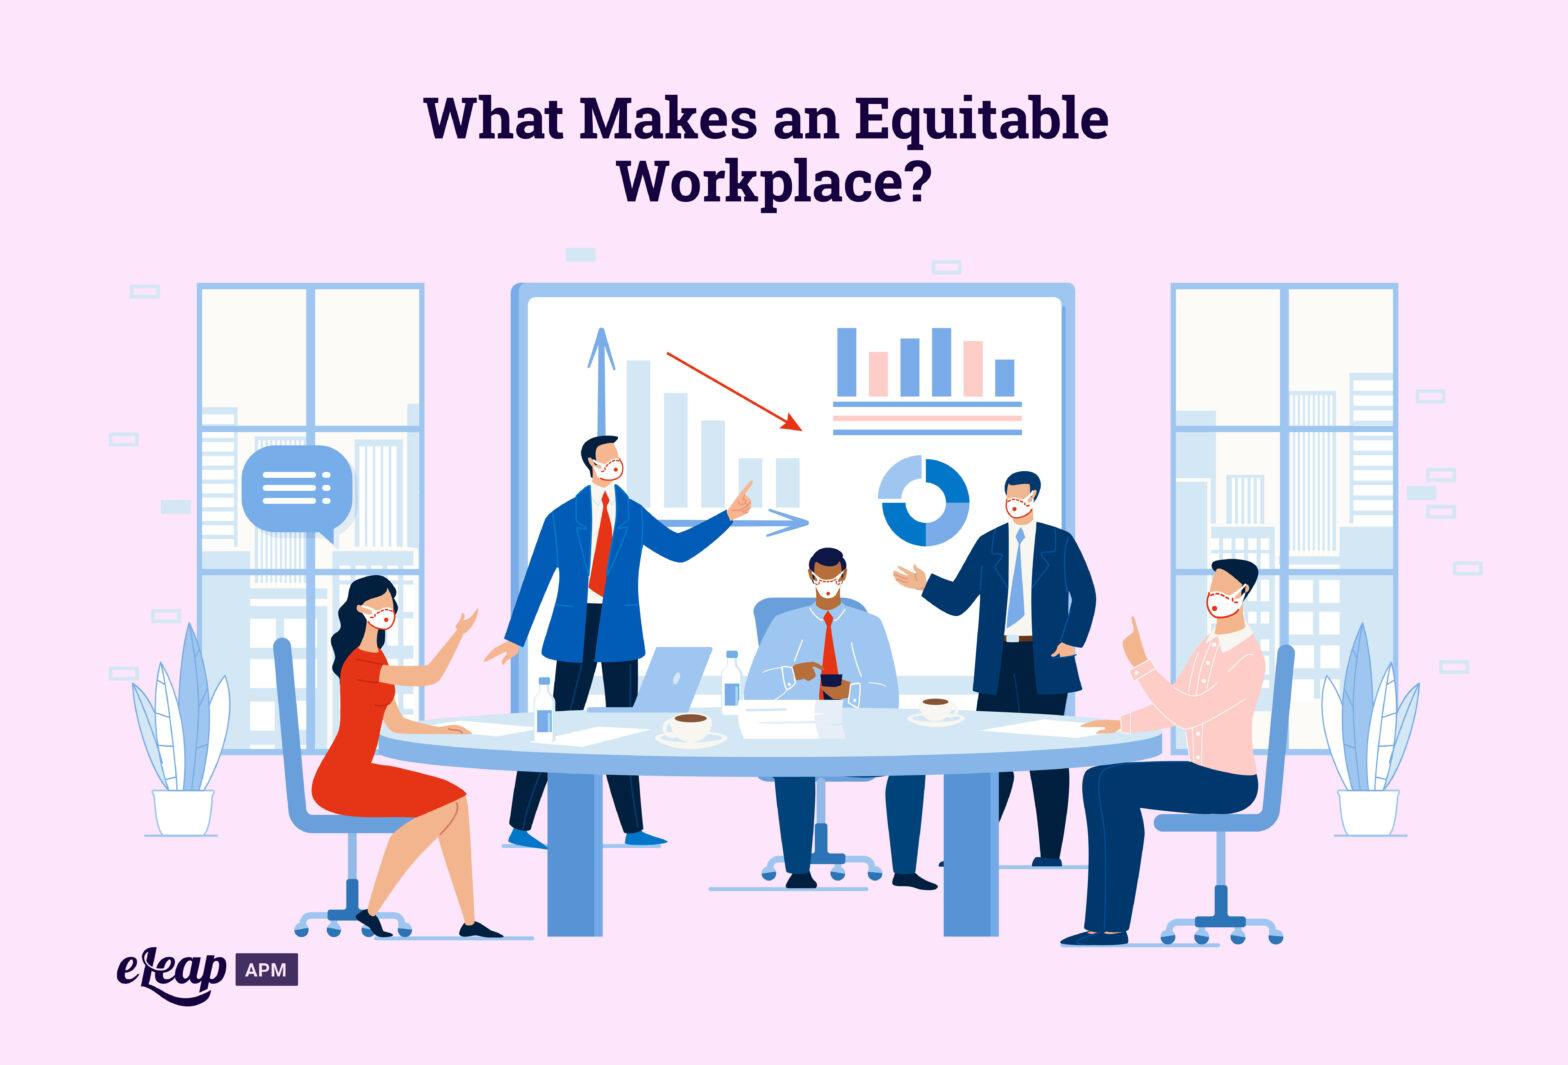 What Makes an Equitable Workplace?